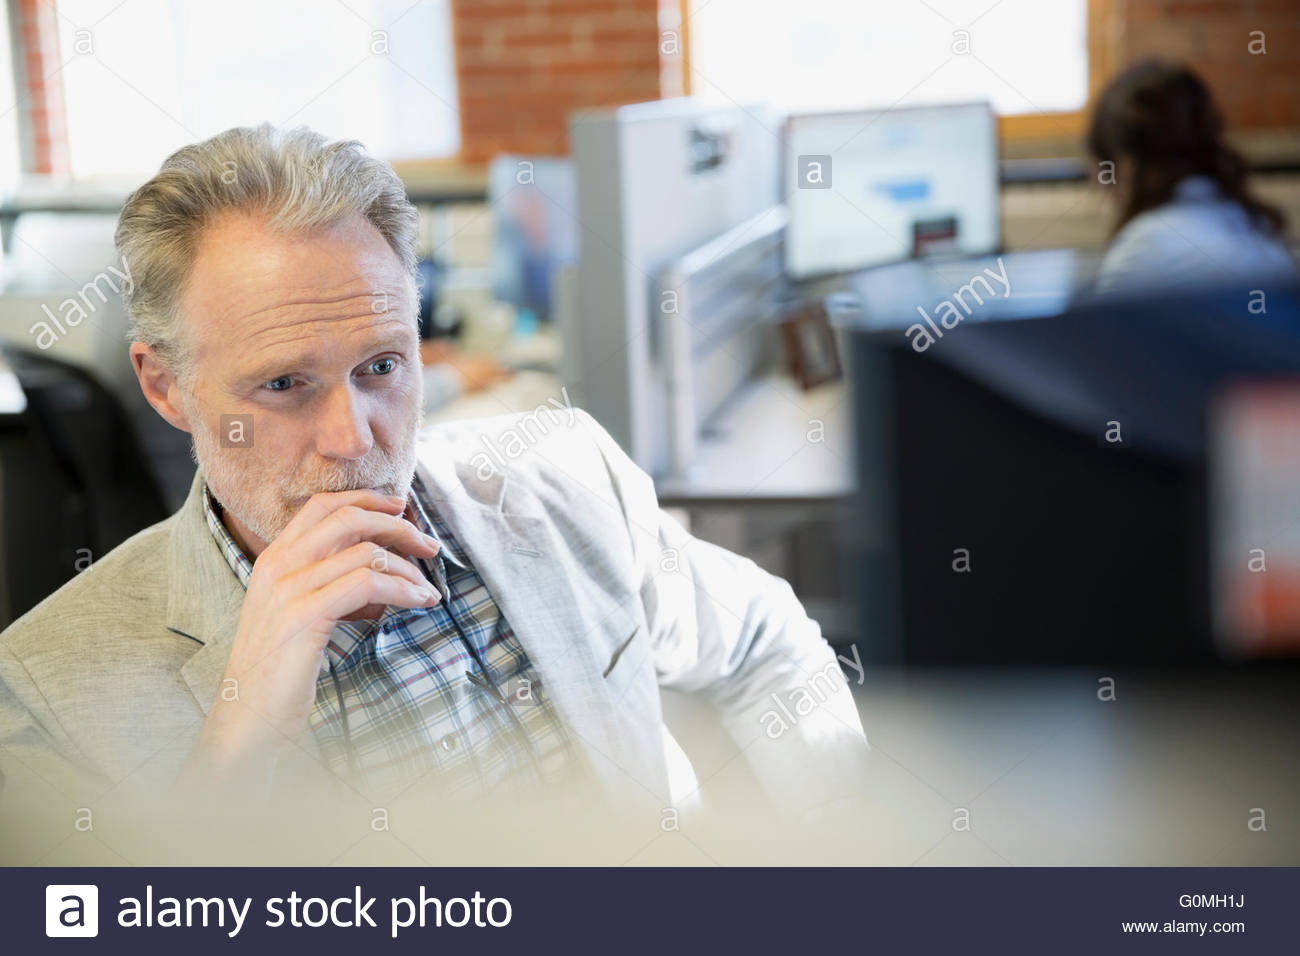 Serious businessman using computer in office Photo Stock